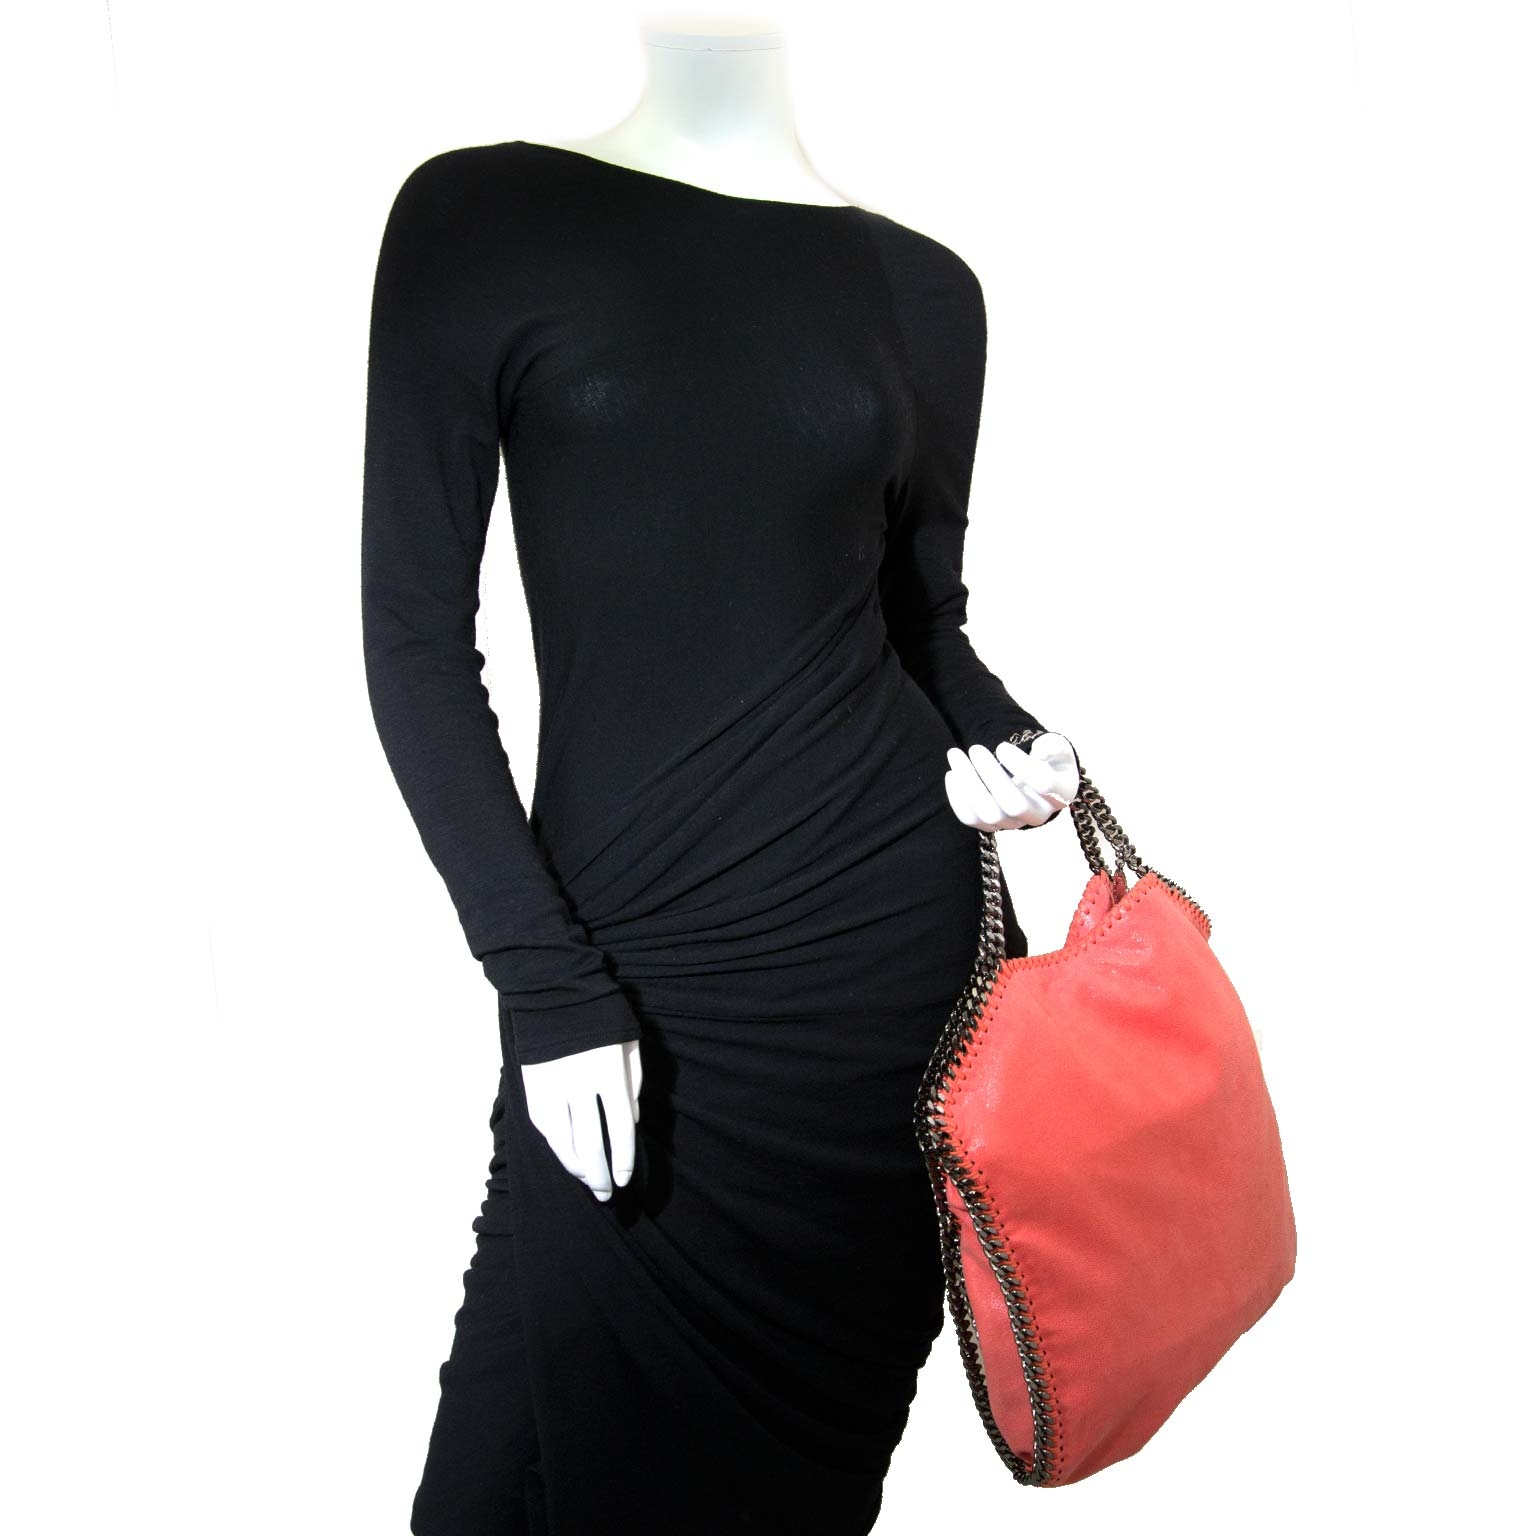 stella mccartney falabella salmon pink bag now for sale at labellov vintage fashion webshop belgium